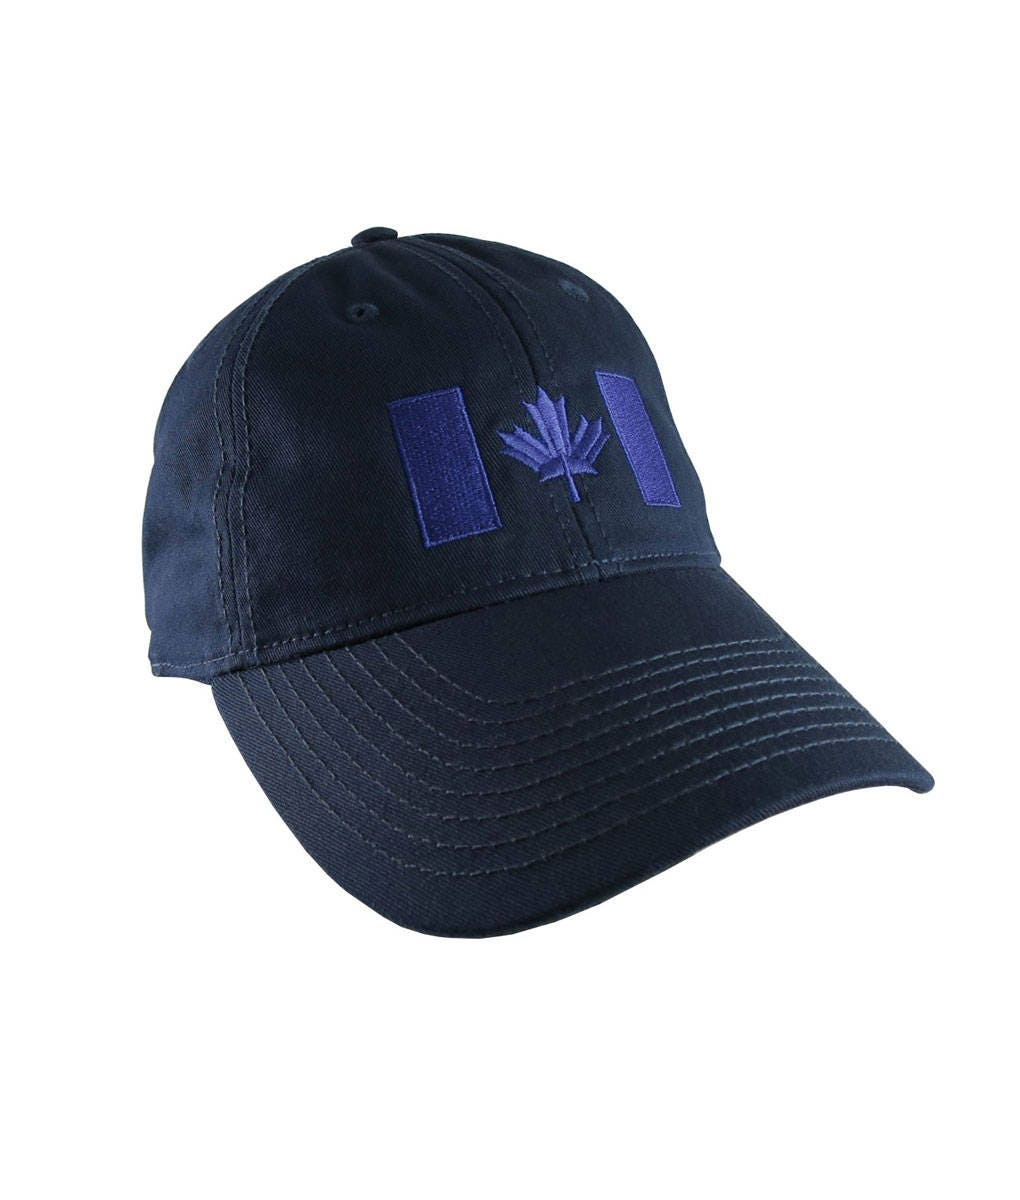 10673ec3db2cc Canadian Flag Royal Blue Embroidery Design on a Dark Navy Blue Adjustable  Unstructured Baseball Cap Dad Hat for a Tone on Tone Fashion Look